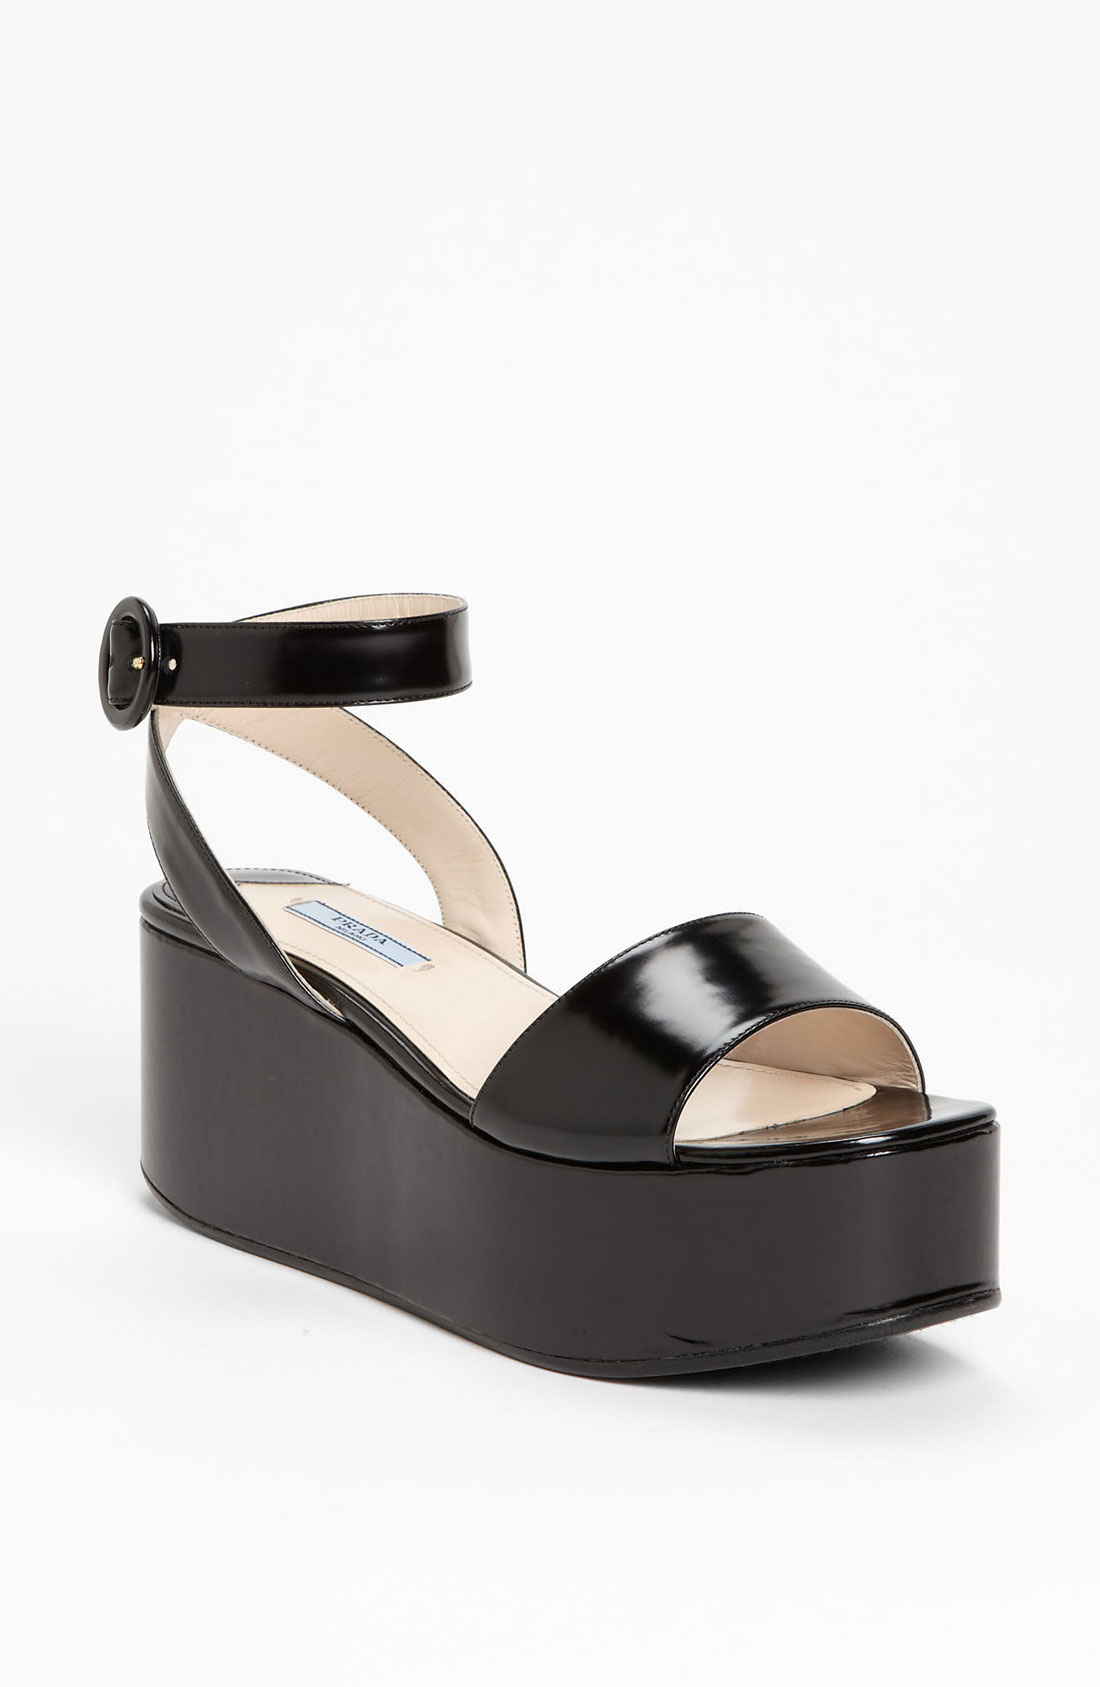 Prada Ankle Strap Wedge Sandal in Black | Lyst